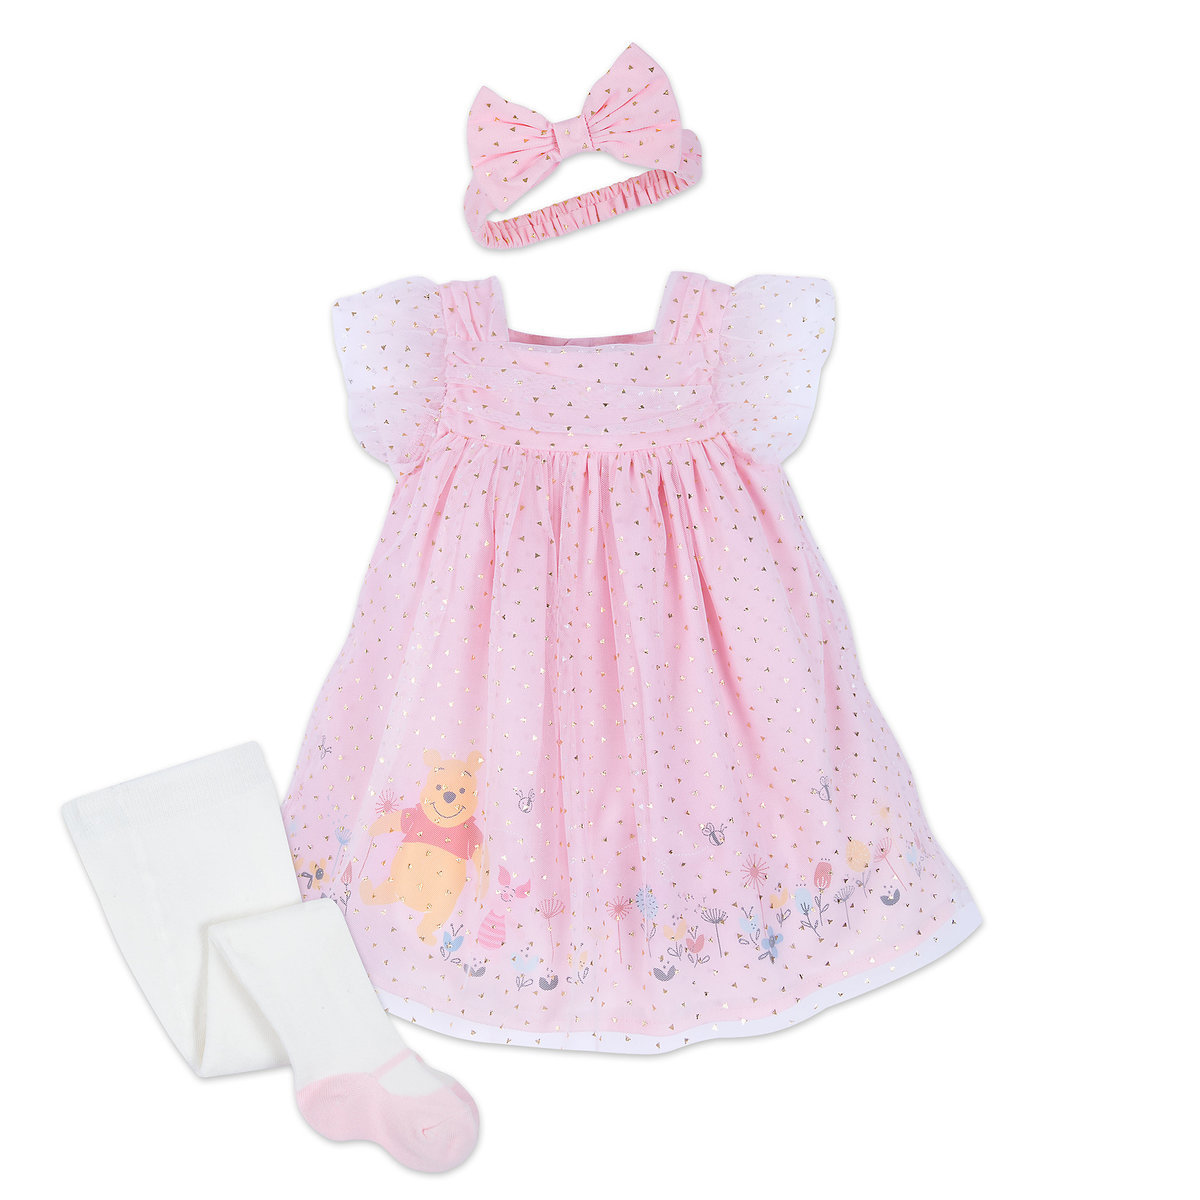 6a5038f35a98 Product Image of Winnie the Pooh Dress Set for Baby   1